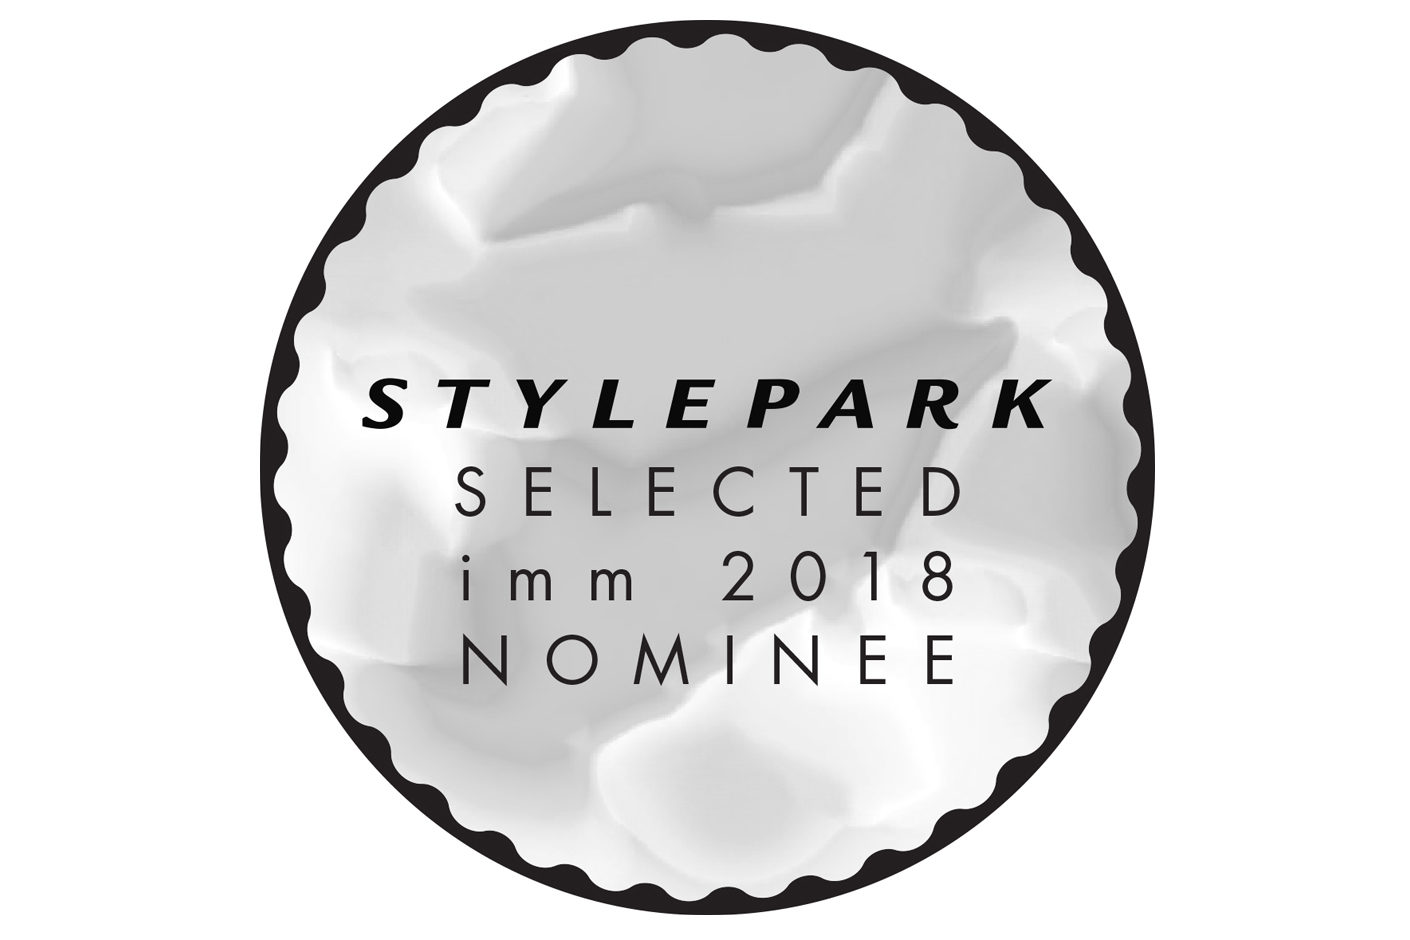 Stylepark Selected imm 2018, Badge nominees, Stylepark